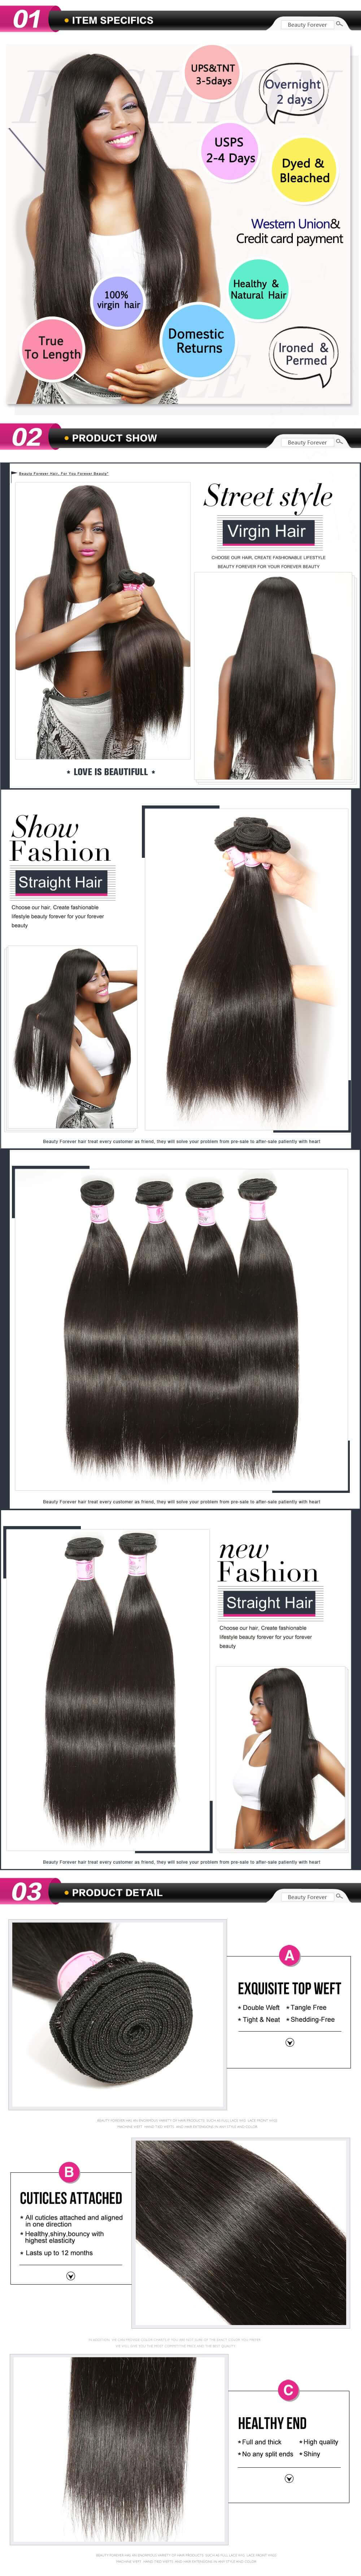 human straight hair bundles